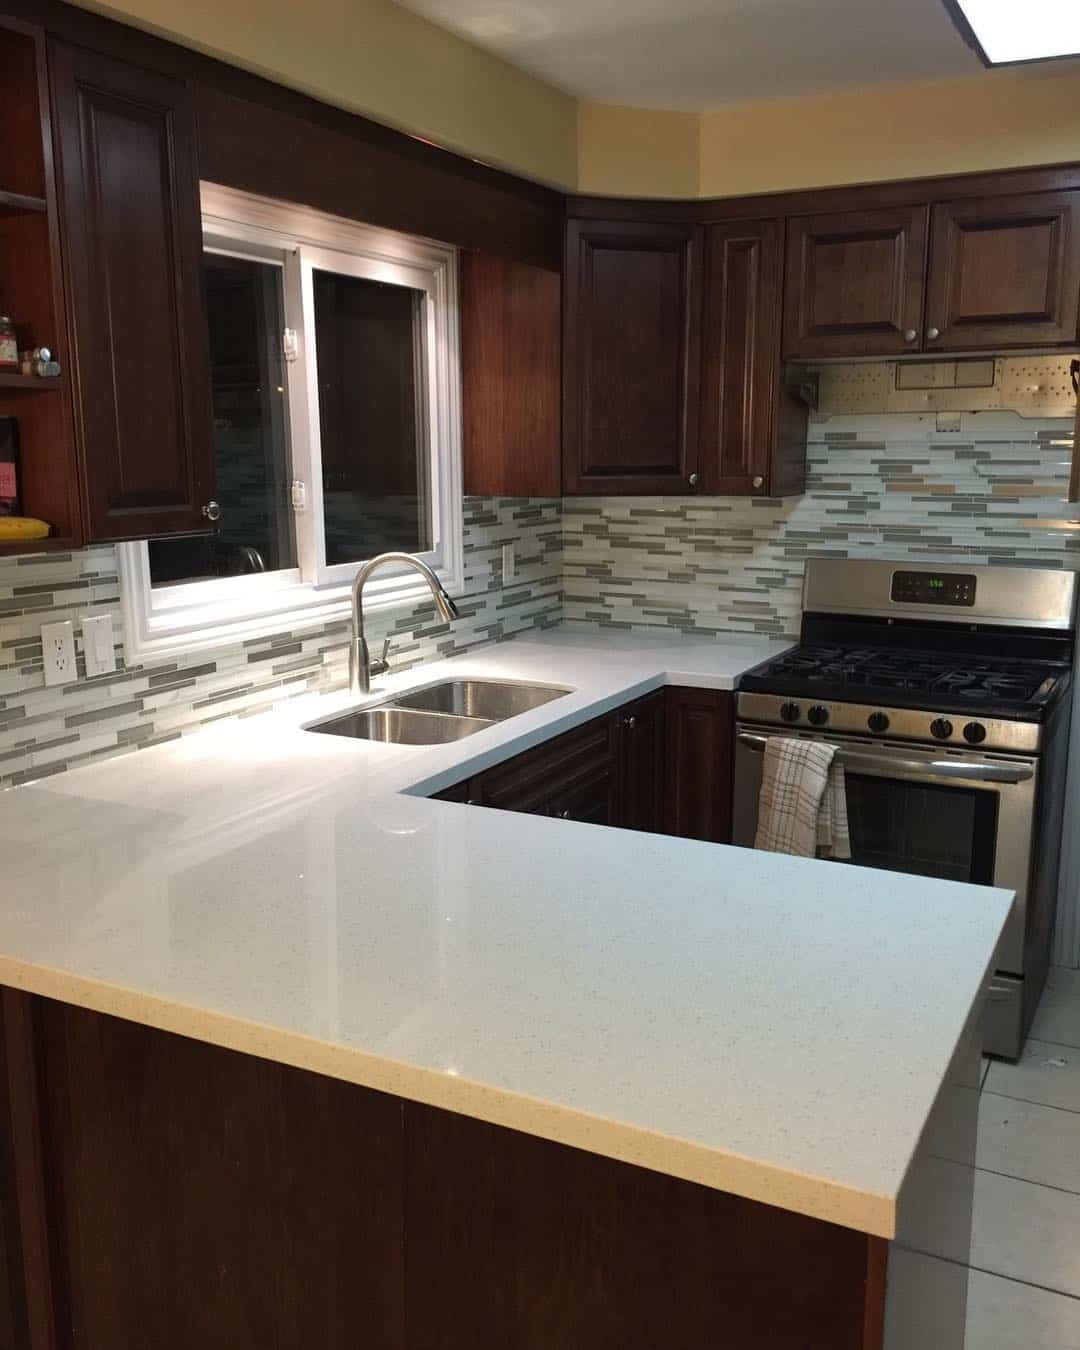 Solid Surface kitchen countertop material